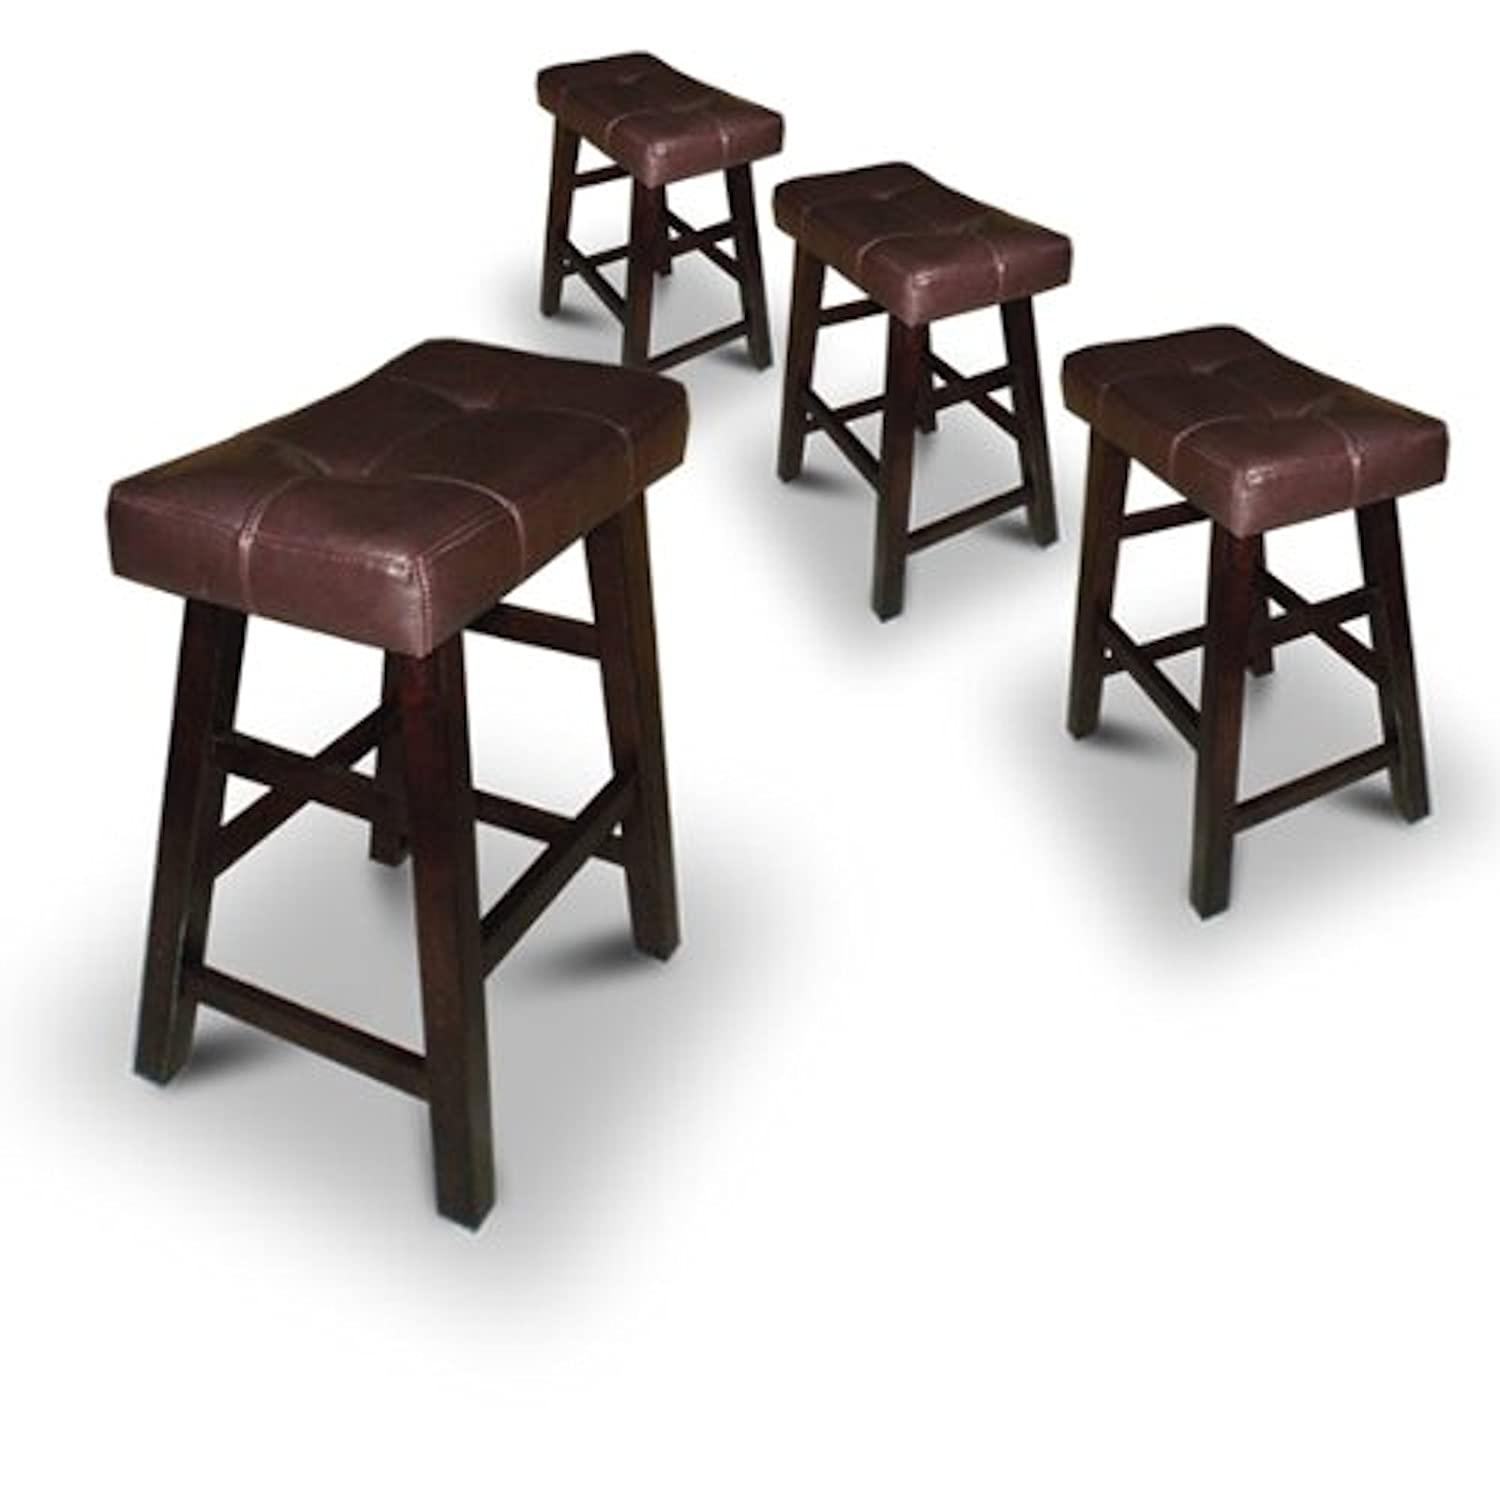 24 Inch Folding Stool With Back